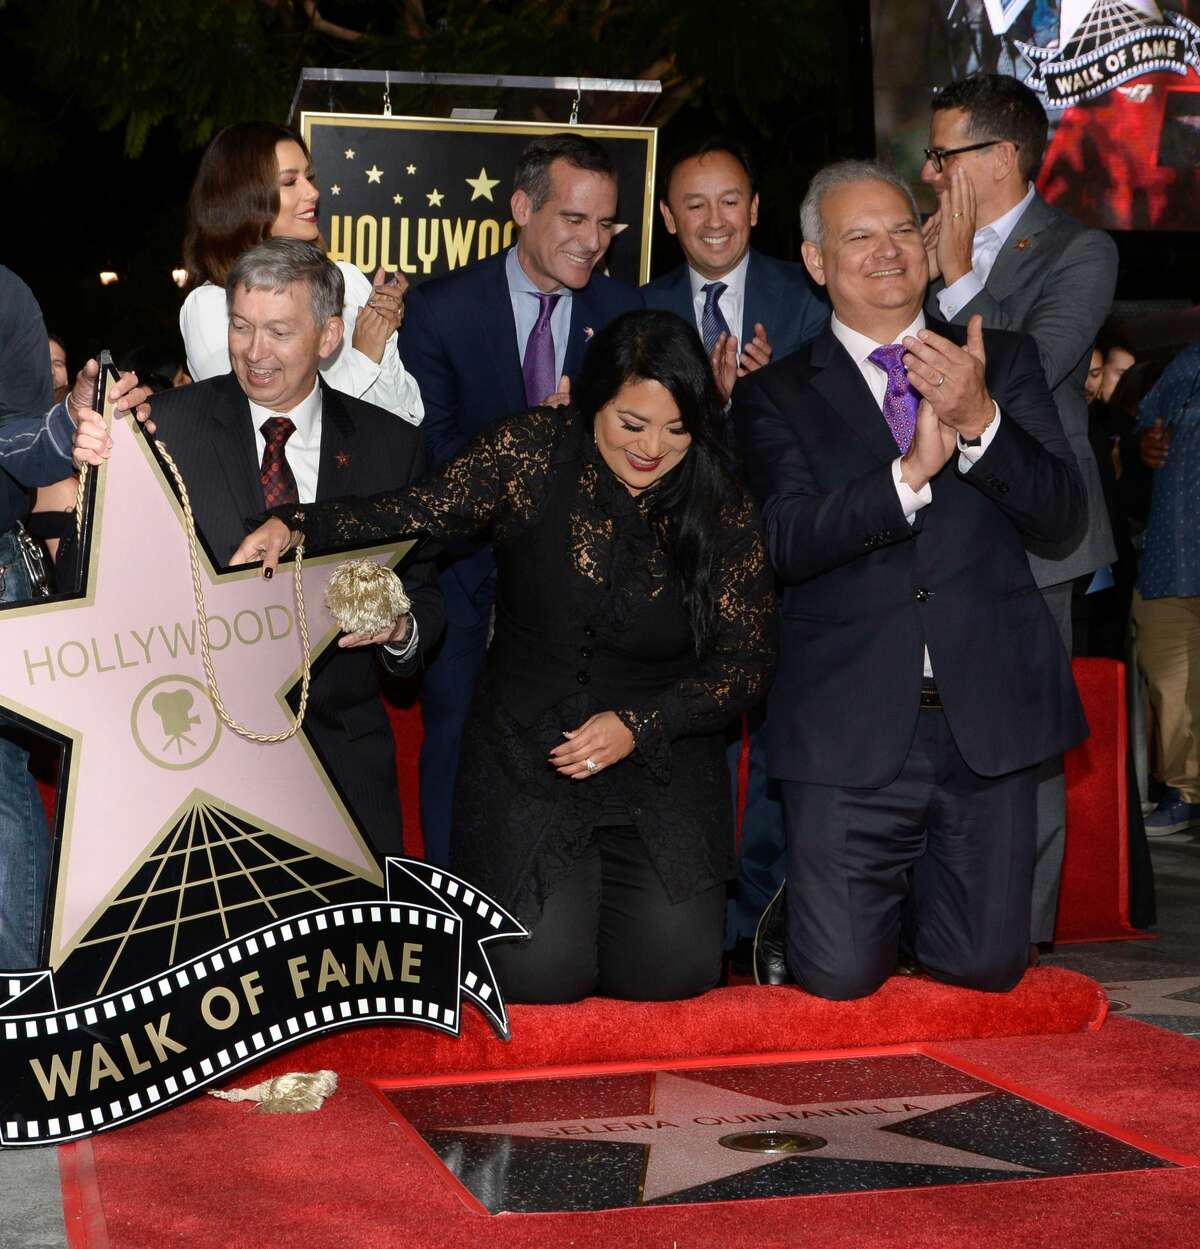 Eva Longoria (back L), Mayor of Los Angeles Eric Garcetti (back C), Victor Gonzalez, Suzette Quintanilla (front C), Leron Gubler (front L) attend the ceremony honoring singer Selena Quintanilla with a Star on the Hollywood Walk of Fame on November 3, 2017, in Hollywood, California. / AFP PHOTO / TARA ZIEMBA (Photo credit should read TARA ZIEMBA/AFP/Getty Images)